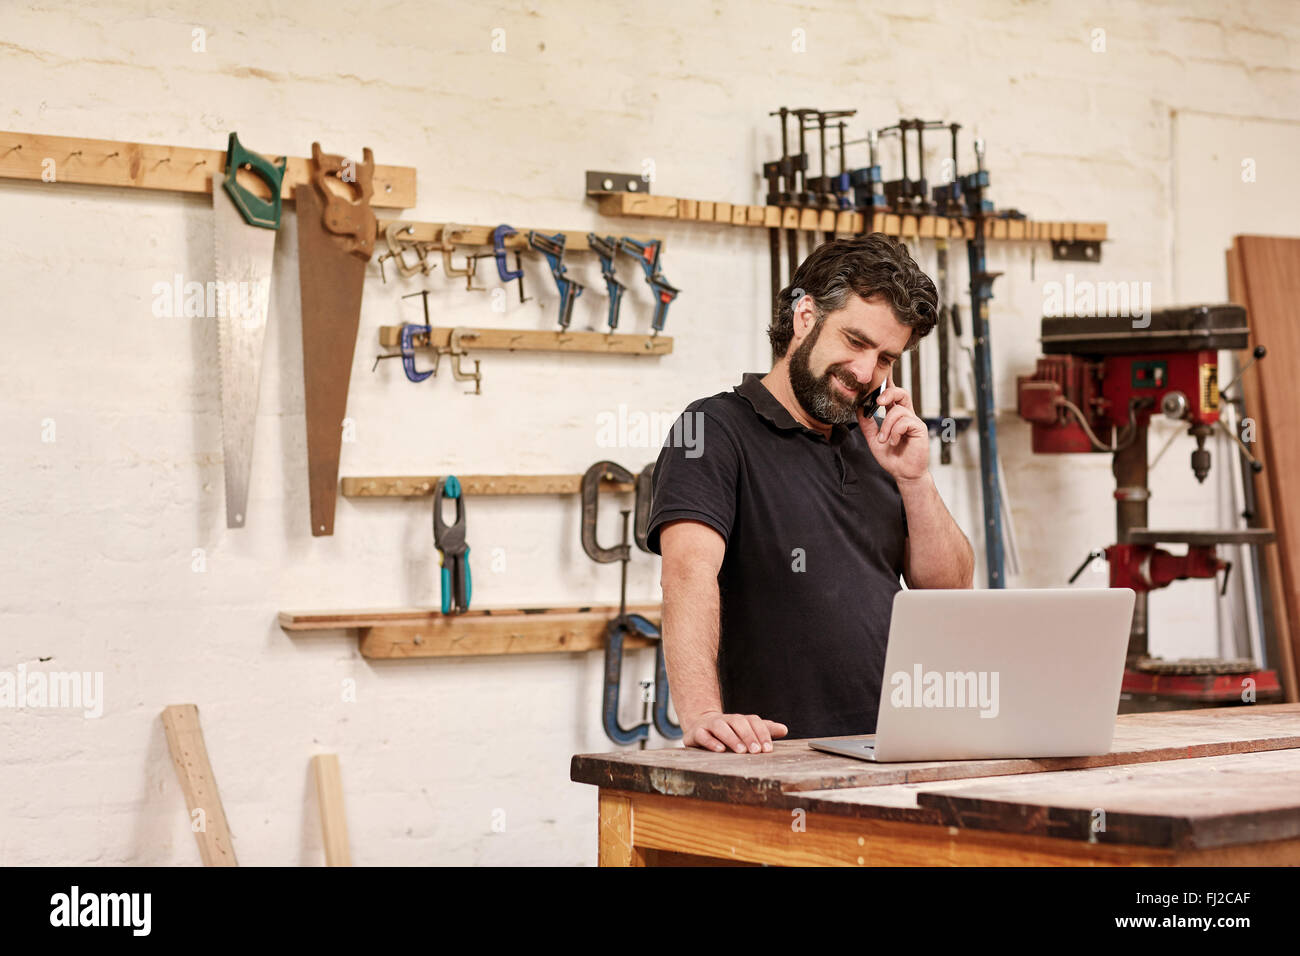 Carpentry small business owner on his phone with a laptop - Stock Image